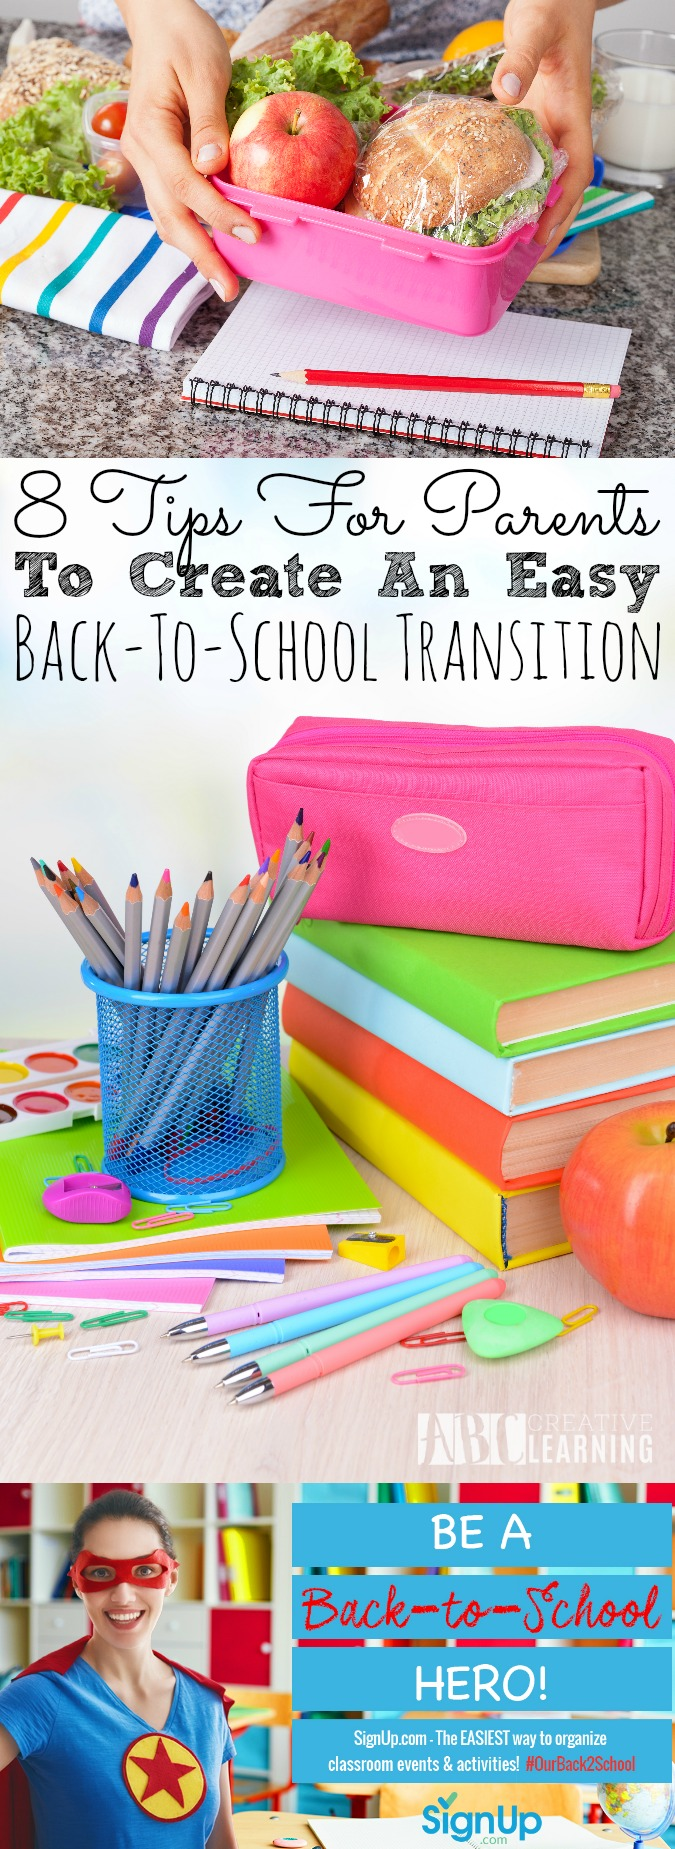 Tips For Parents To Create An Easy Back To School Transition